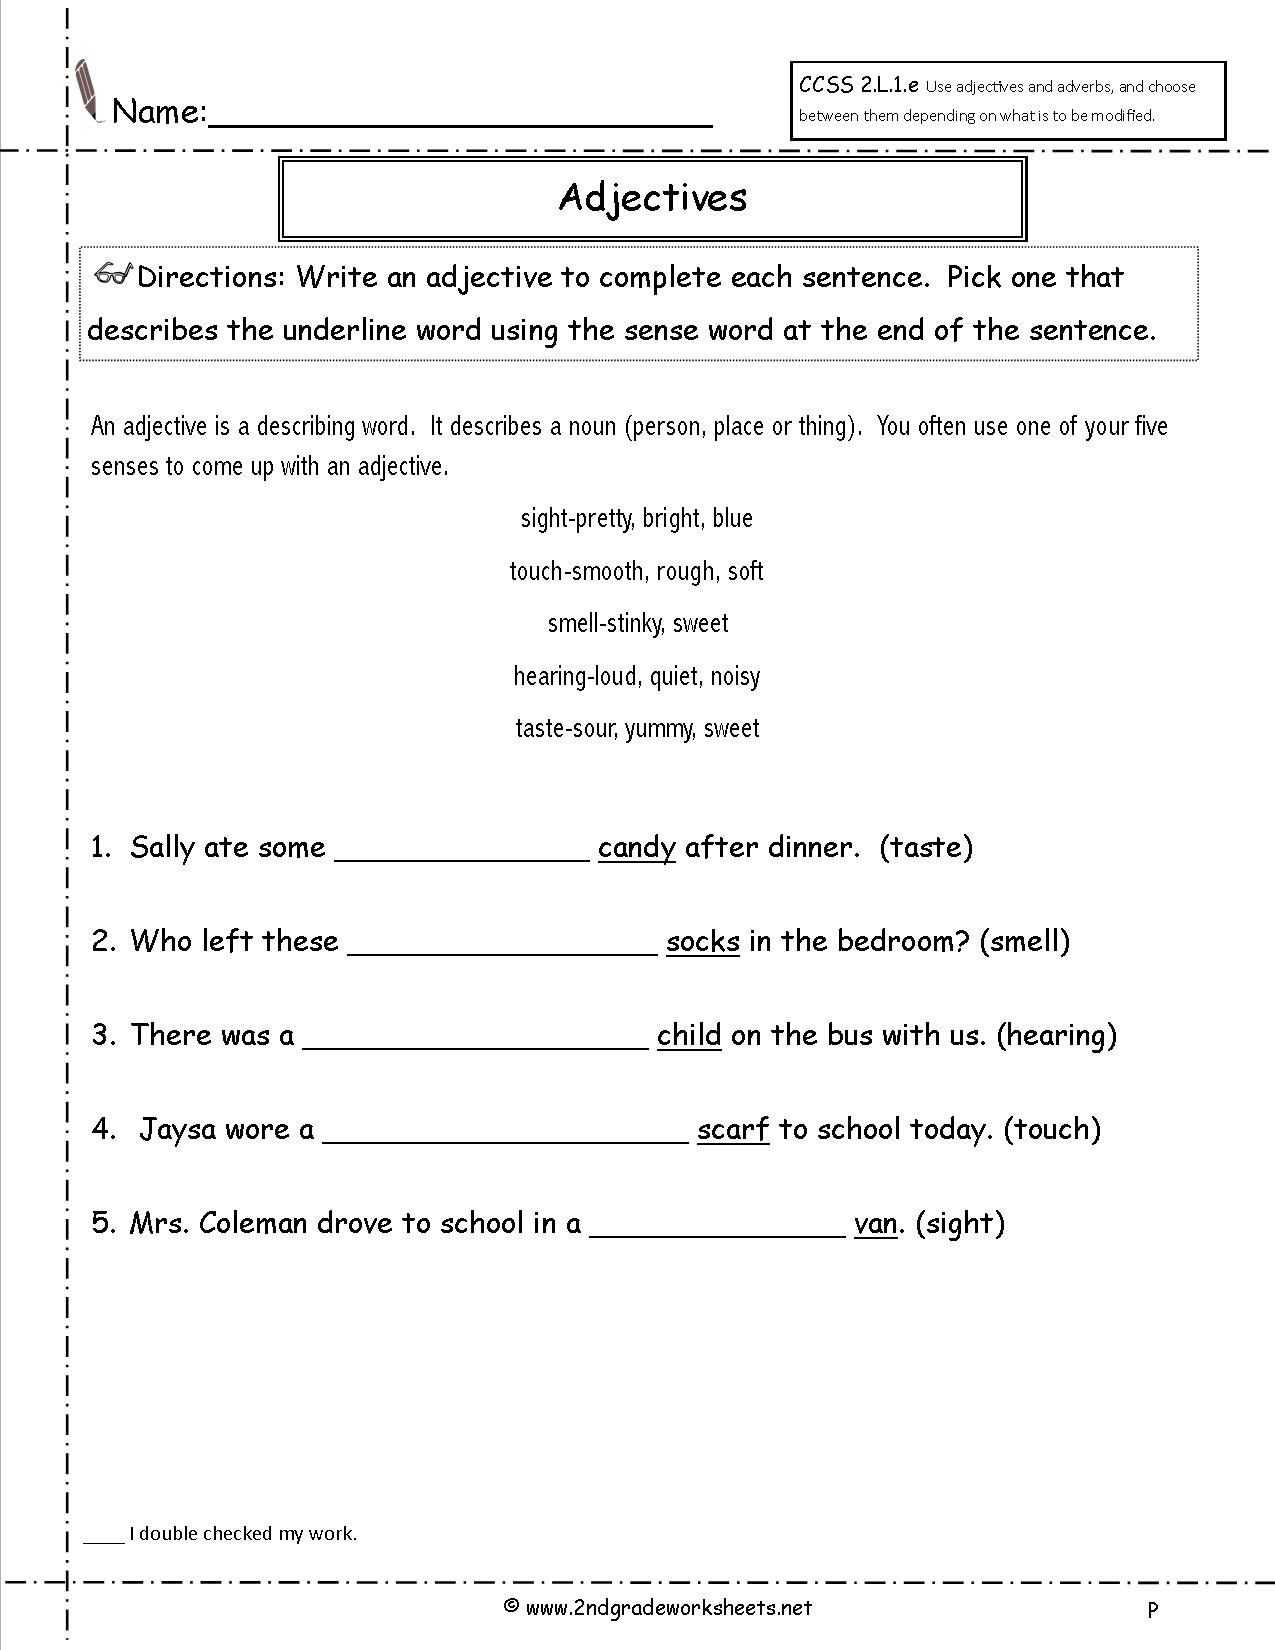 6 Adjectives Worksheets For Grade 2 In